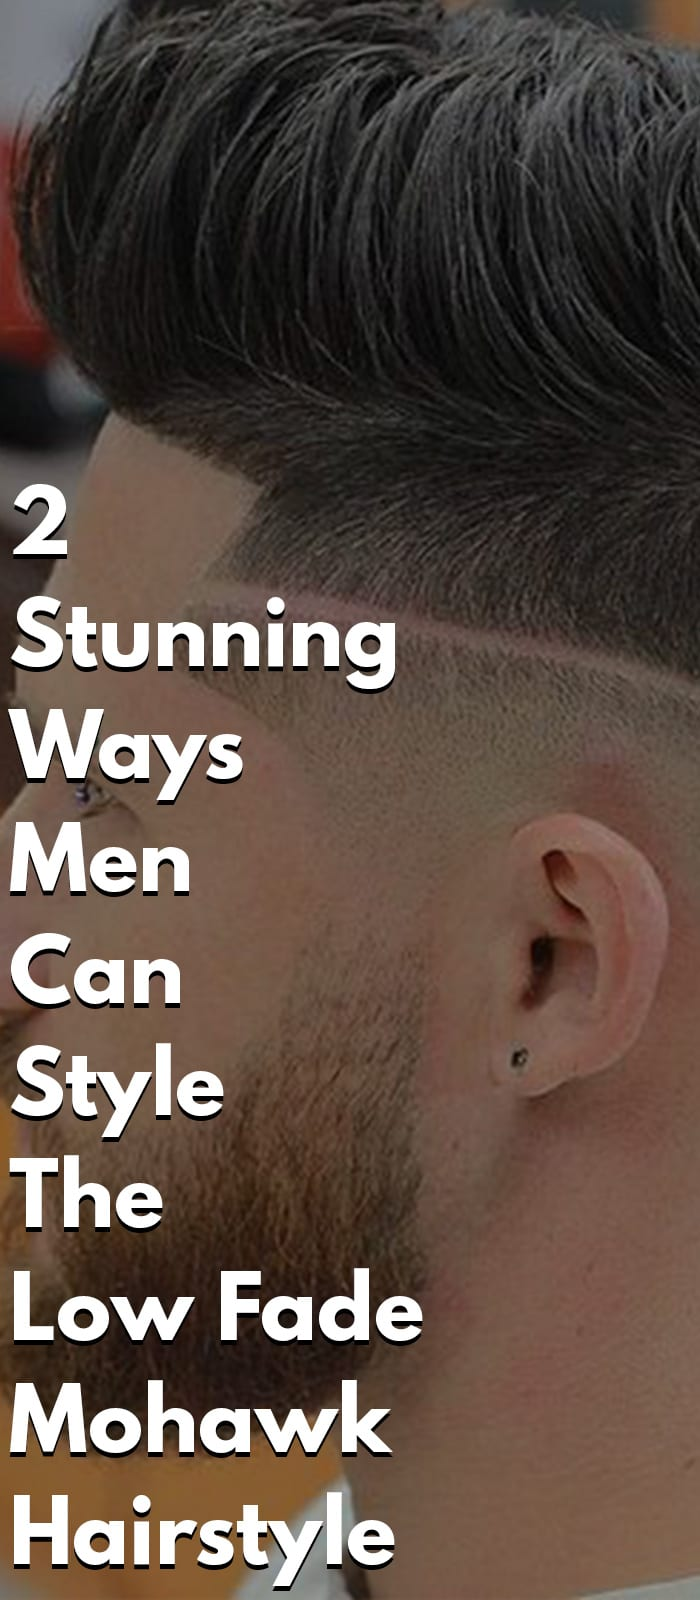 2 Stunning Ways Men Can Style The Low Fade Mohawk Hairstyle